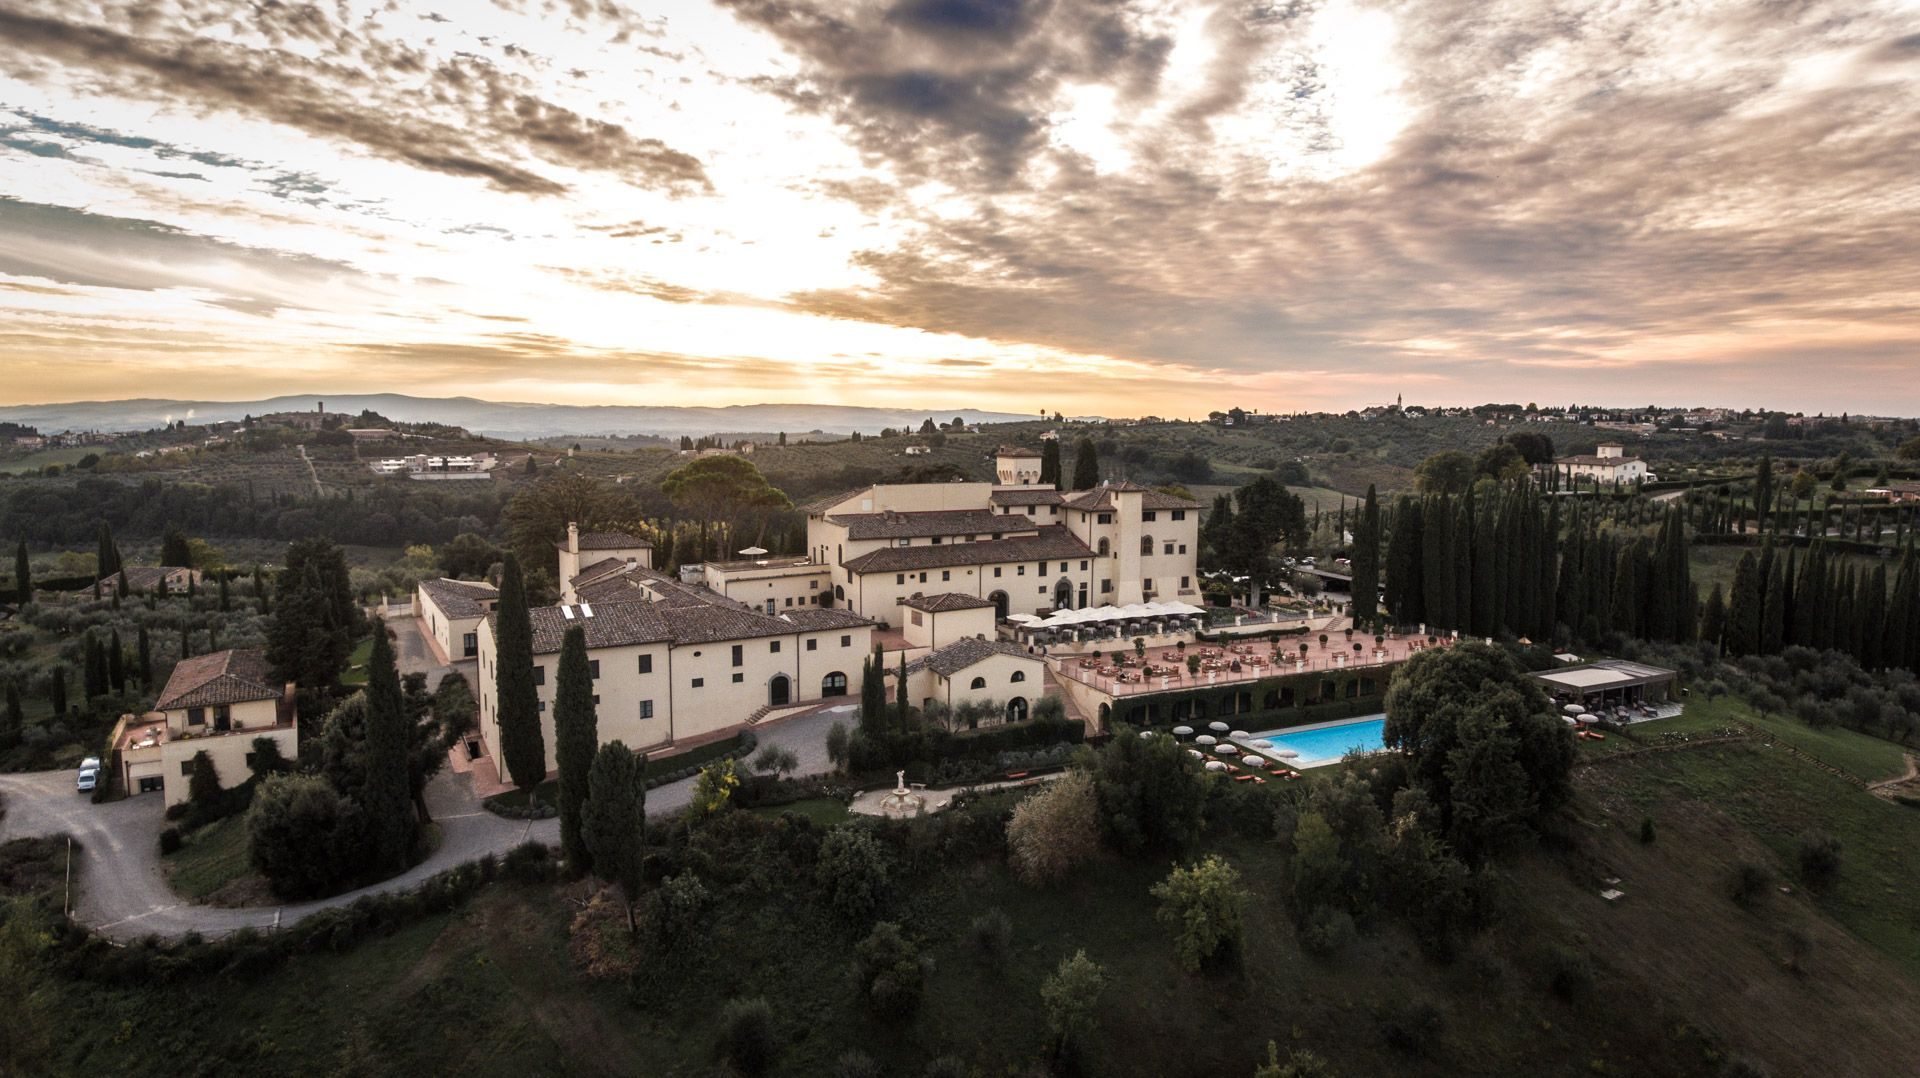 So honored to be nominated for the Travel + Leisure 2017 World's Best Awards. Cast your vote for Castello del Nero Hotel & Spa if we made your holiday an unforgettable one! https://tlworldsbest.wylei.com/ziuvWzXc #castellodelnero #anauthentictuscanexperience #lhw #tuscany #chiantiwineregion #travelandleisure #TLWorldsBest